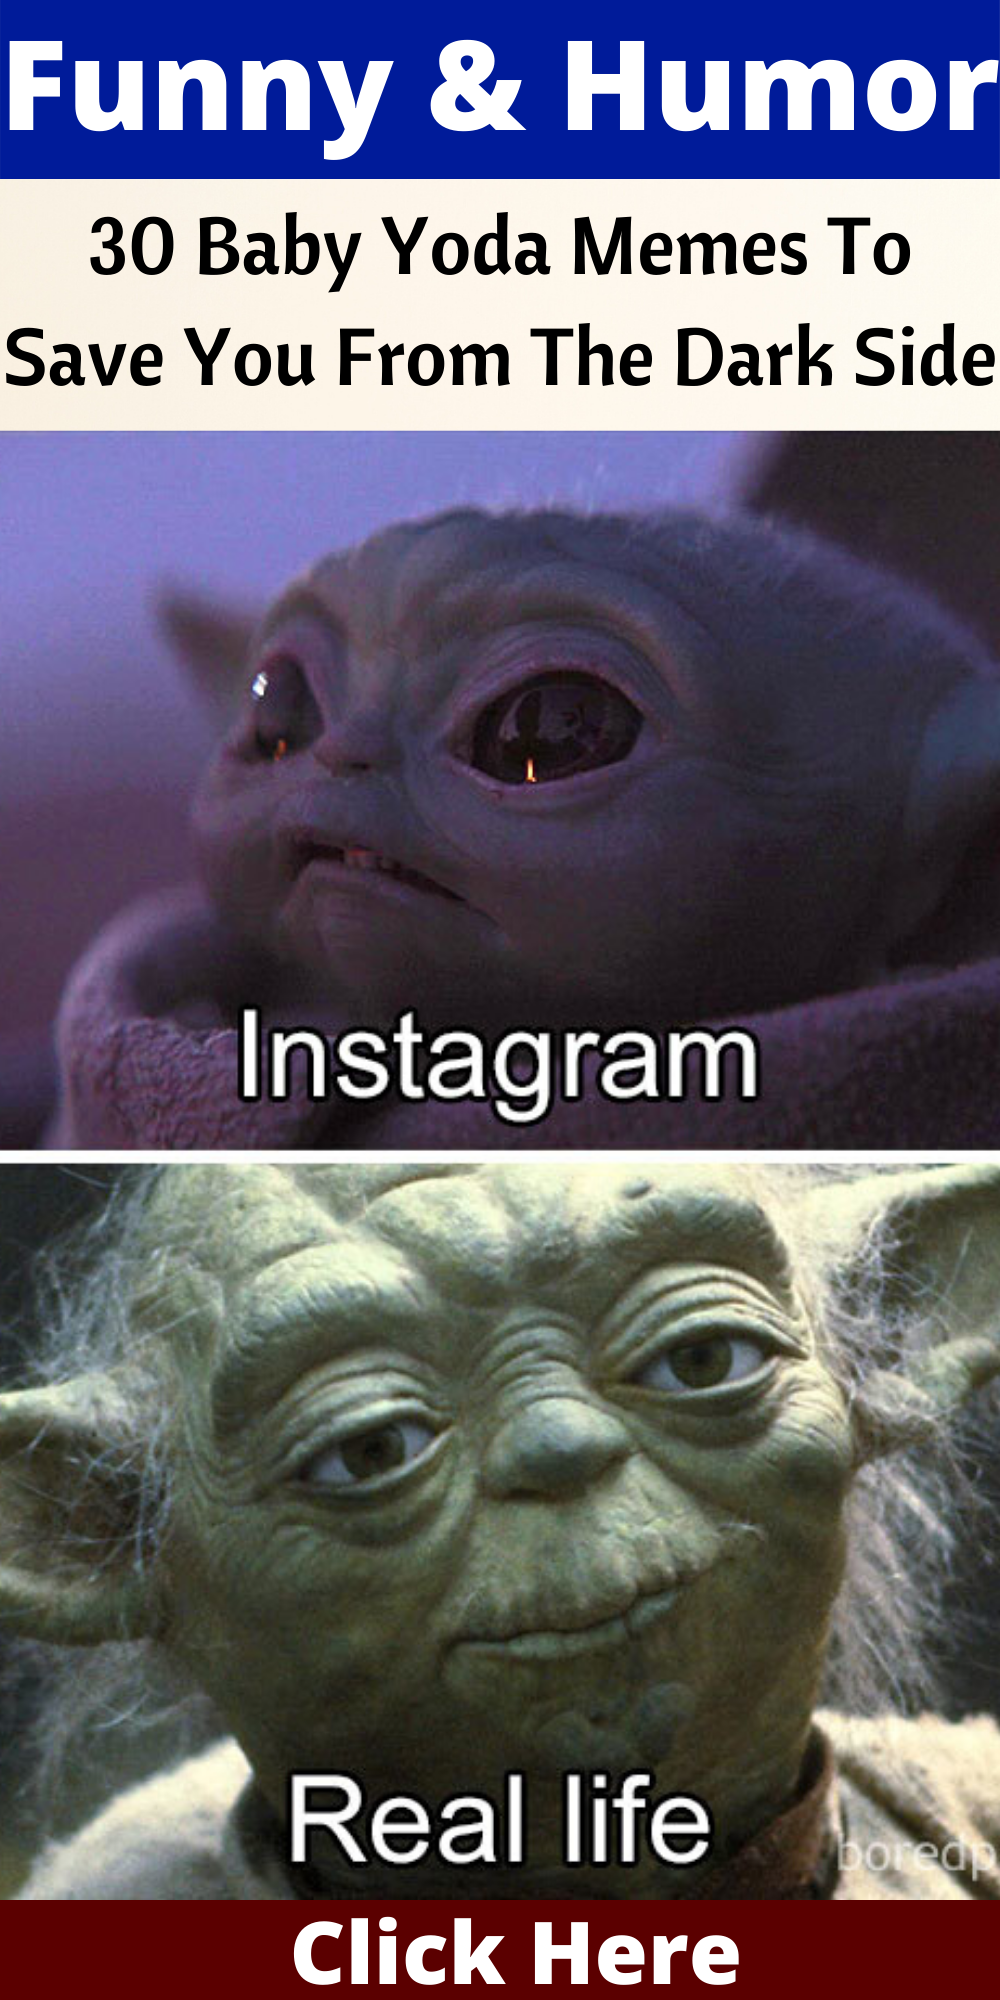 30 Baby Yoda Memes To Save You From The Dark Side Humor Memes Funny Memes